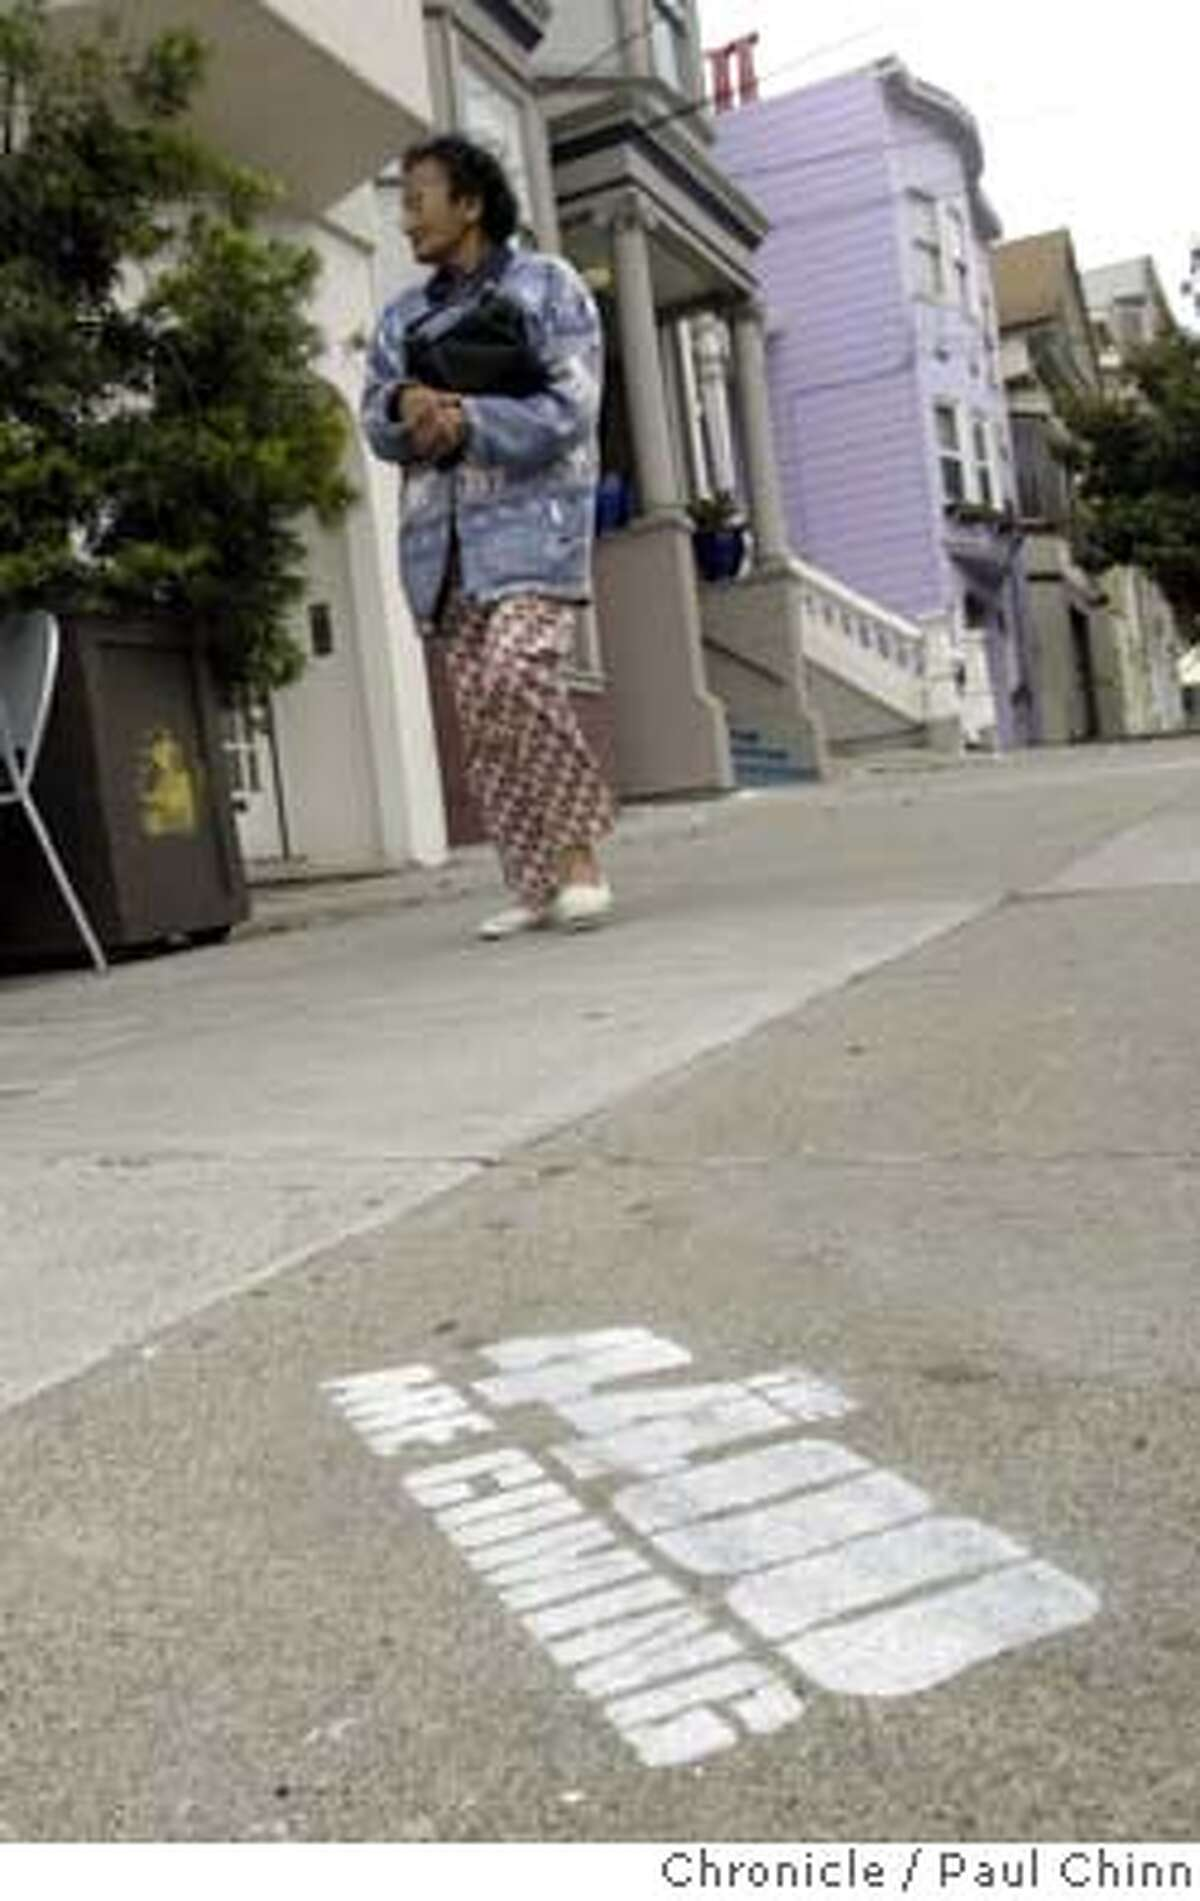 graffiti24_023_pc.jpg A pedestrian walks near an advertisement spray-painted on the sidewalk promoting a new science fiction TV series. The city is demanding the network reimburse the costs for removing the ads. Sidewalk graffiti advertising a cable TV series at 24th and Noe in San Francisco on 7/23/04. PAUL CHINN/The Chronicle MANDATORY CREDIT FOR PHOTOG AND S.F. CHRONICLE/ - MAGS OUT